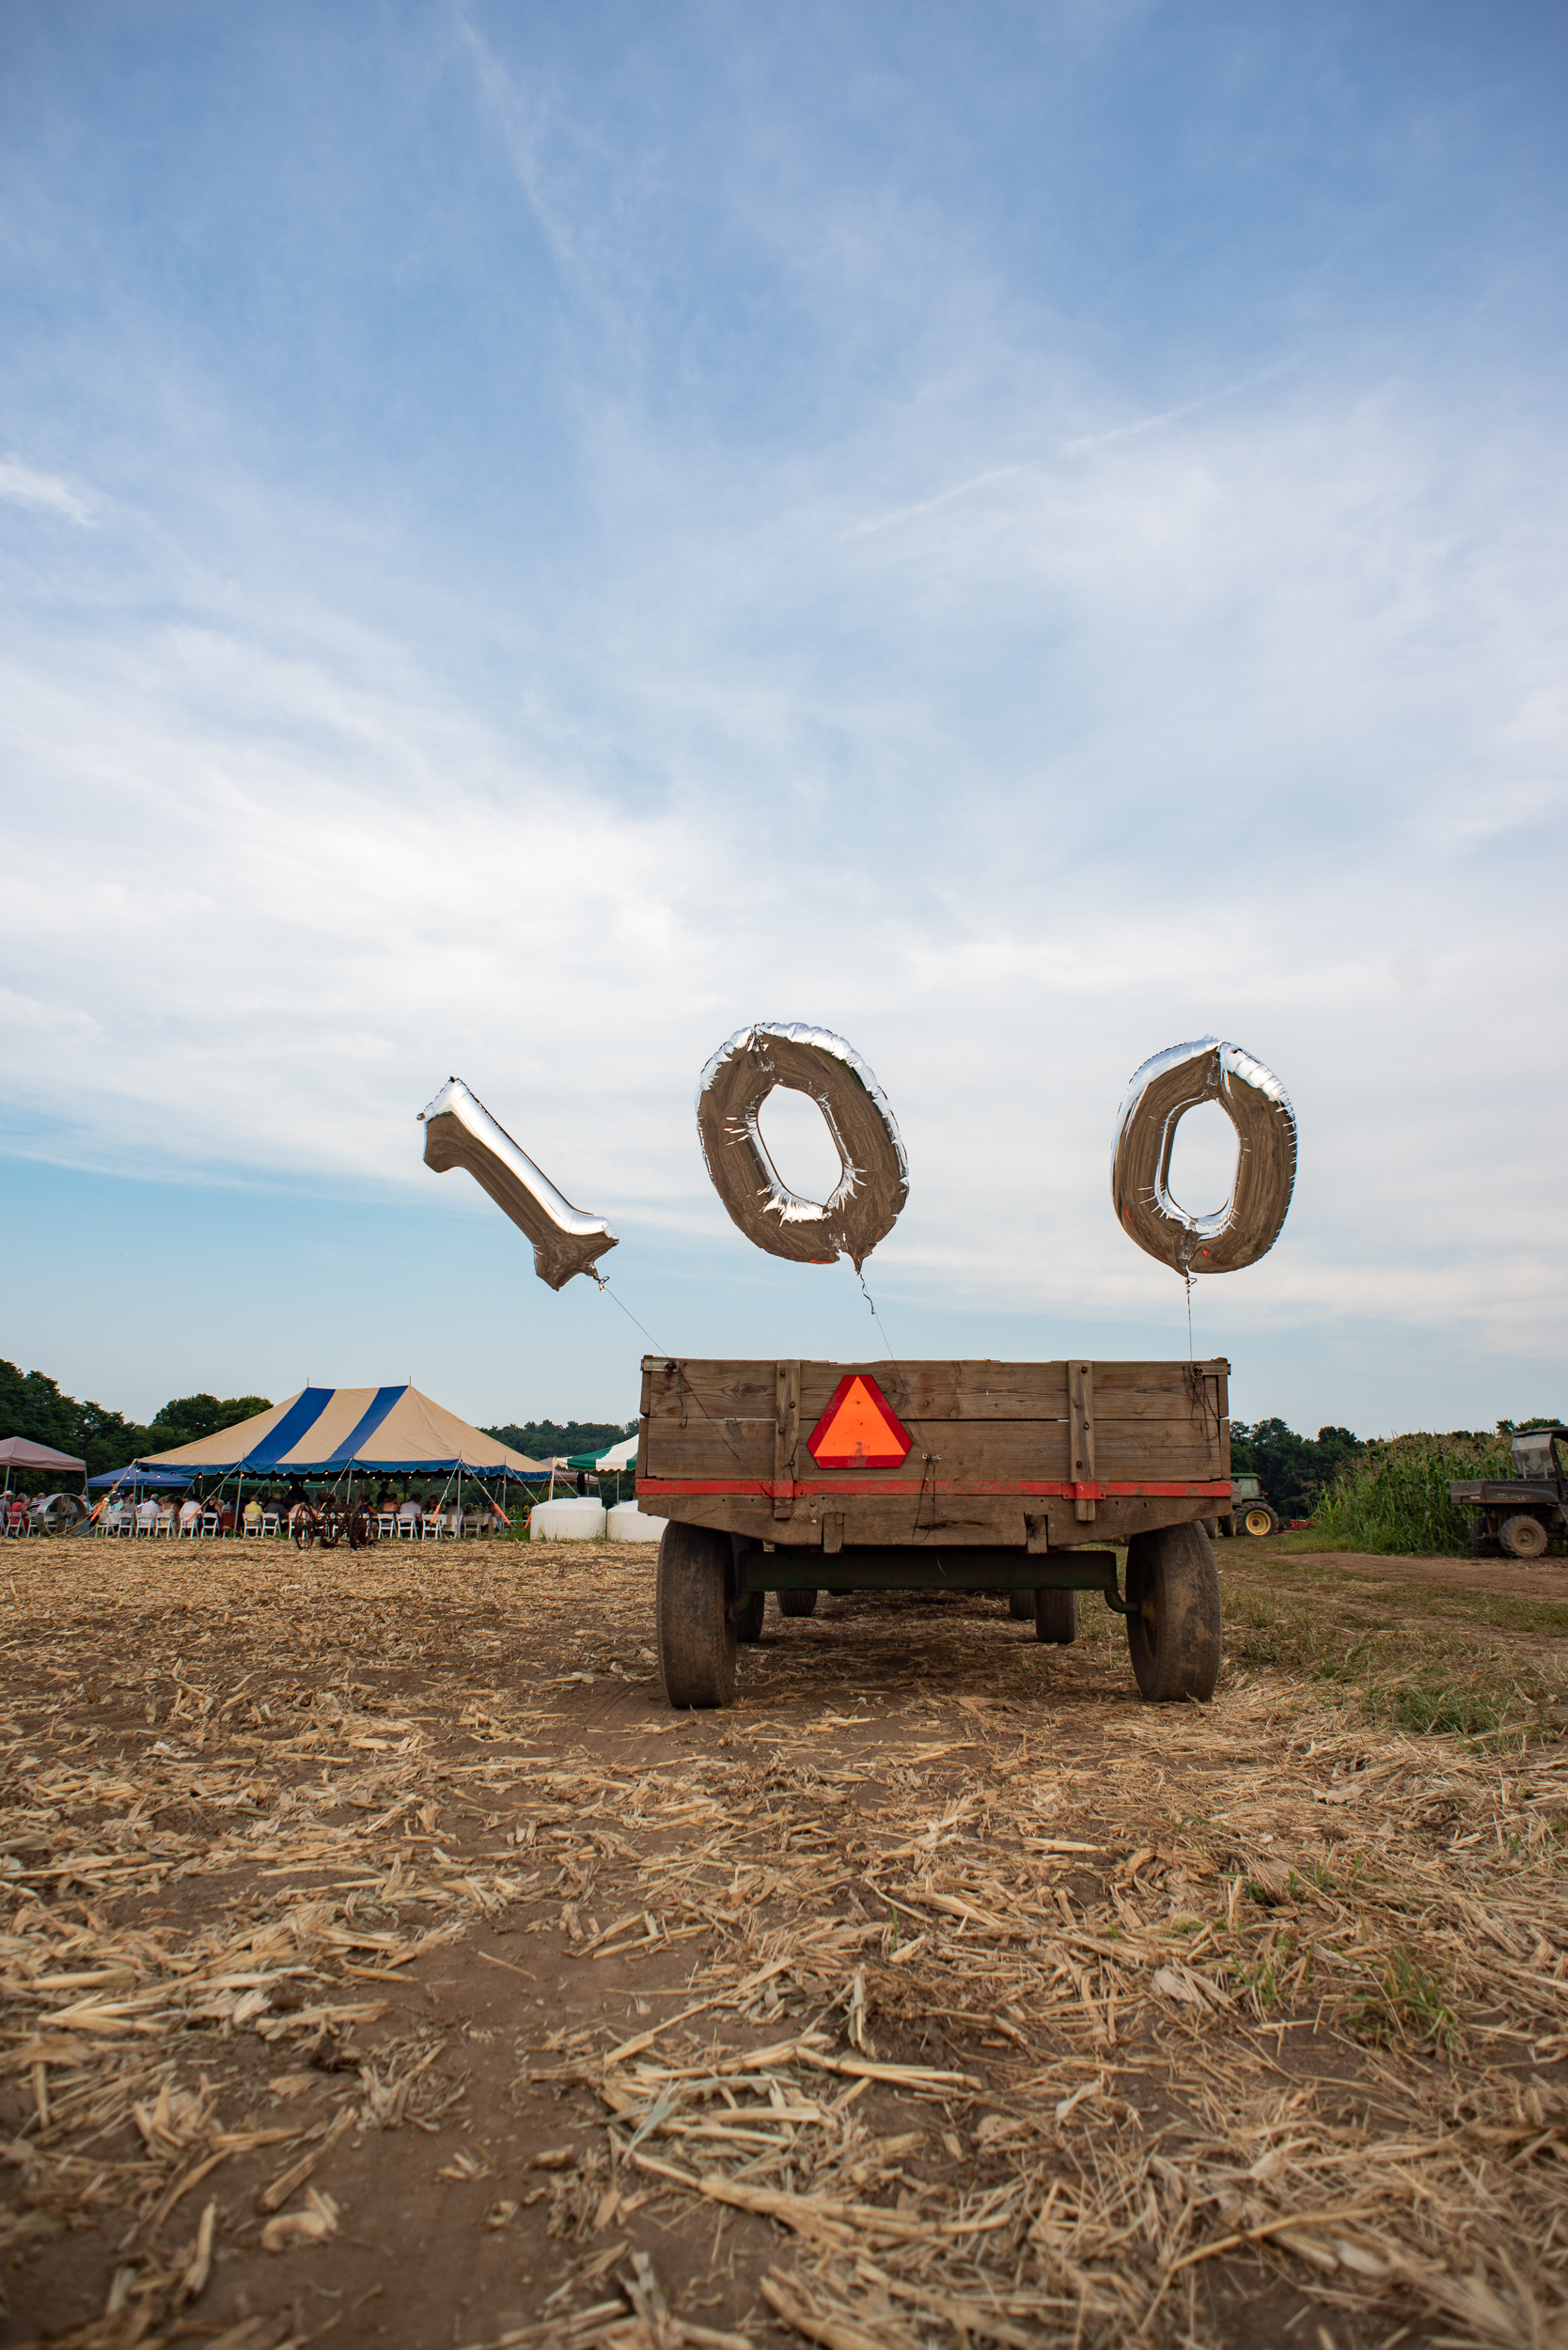 100 Years of Burwinkel Farms | Amie Santavicca, Photographer